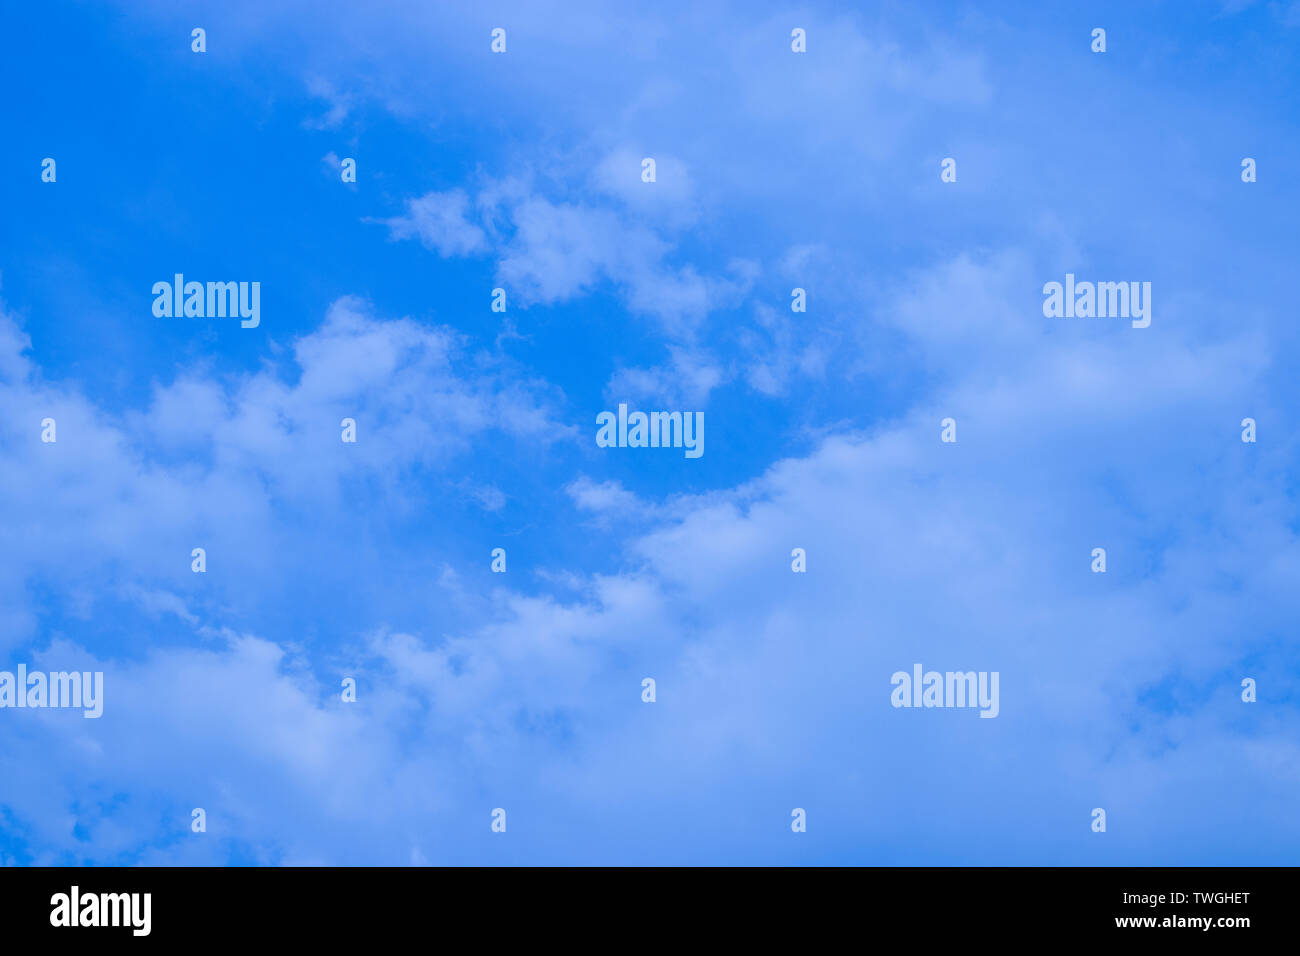 Blue sky with clouds, fluffy white cloud on air clear blue sky weather background texture. High resolution image gallery. - Stock Image